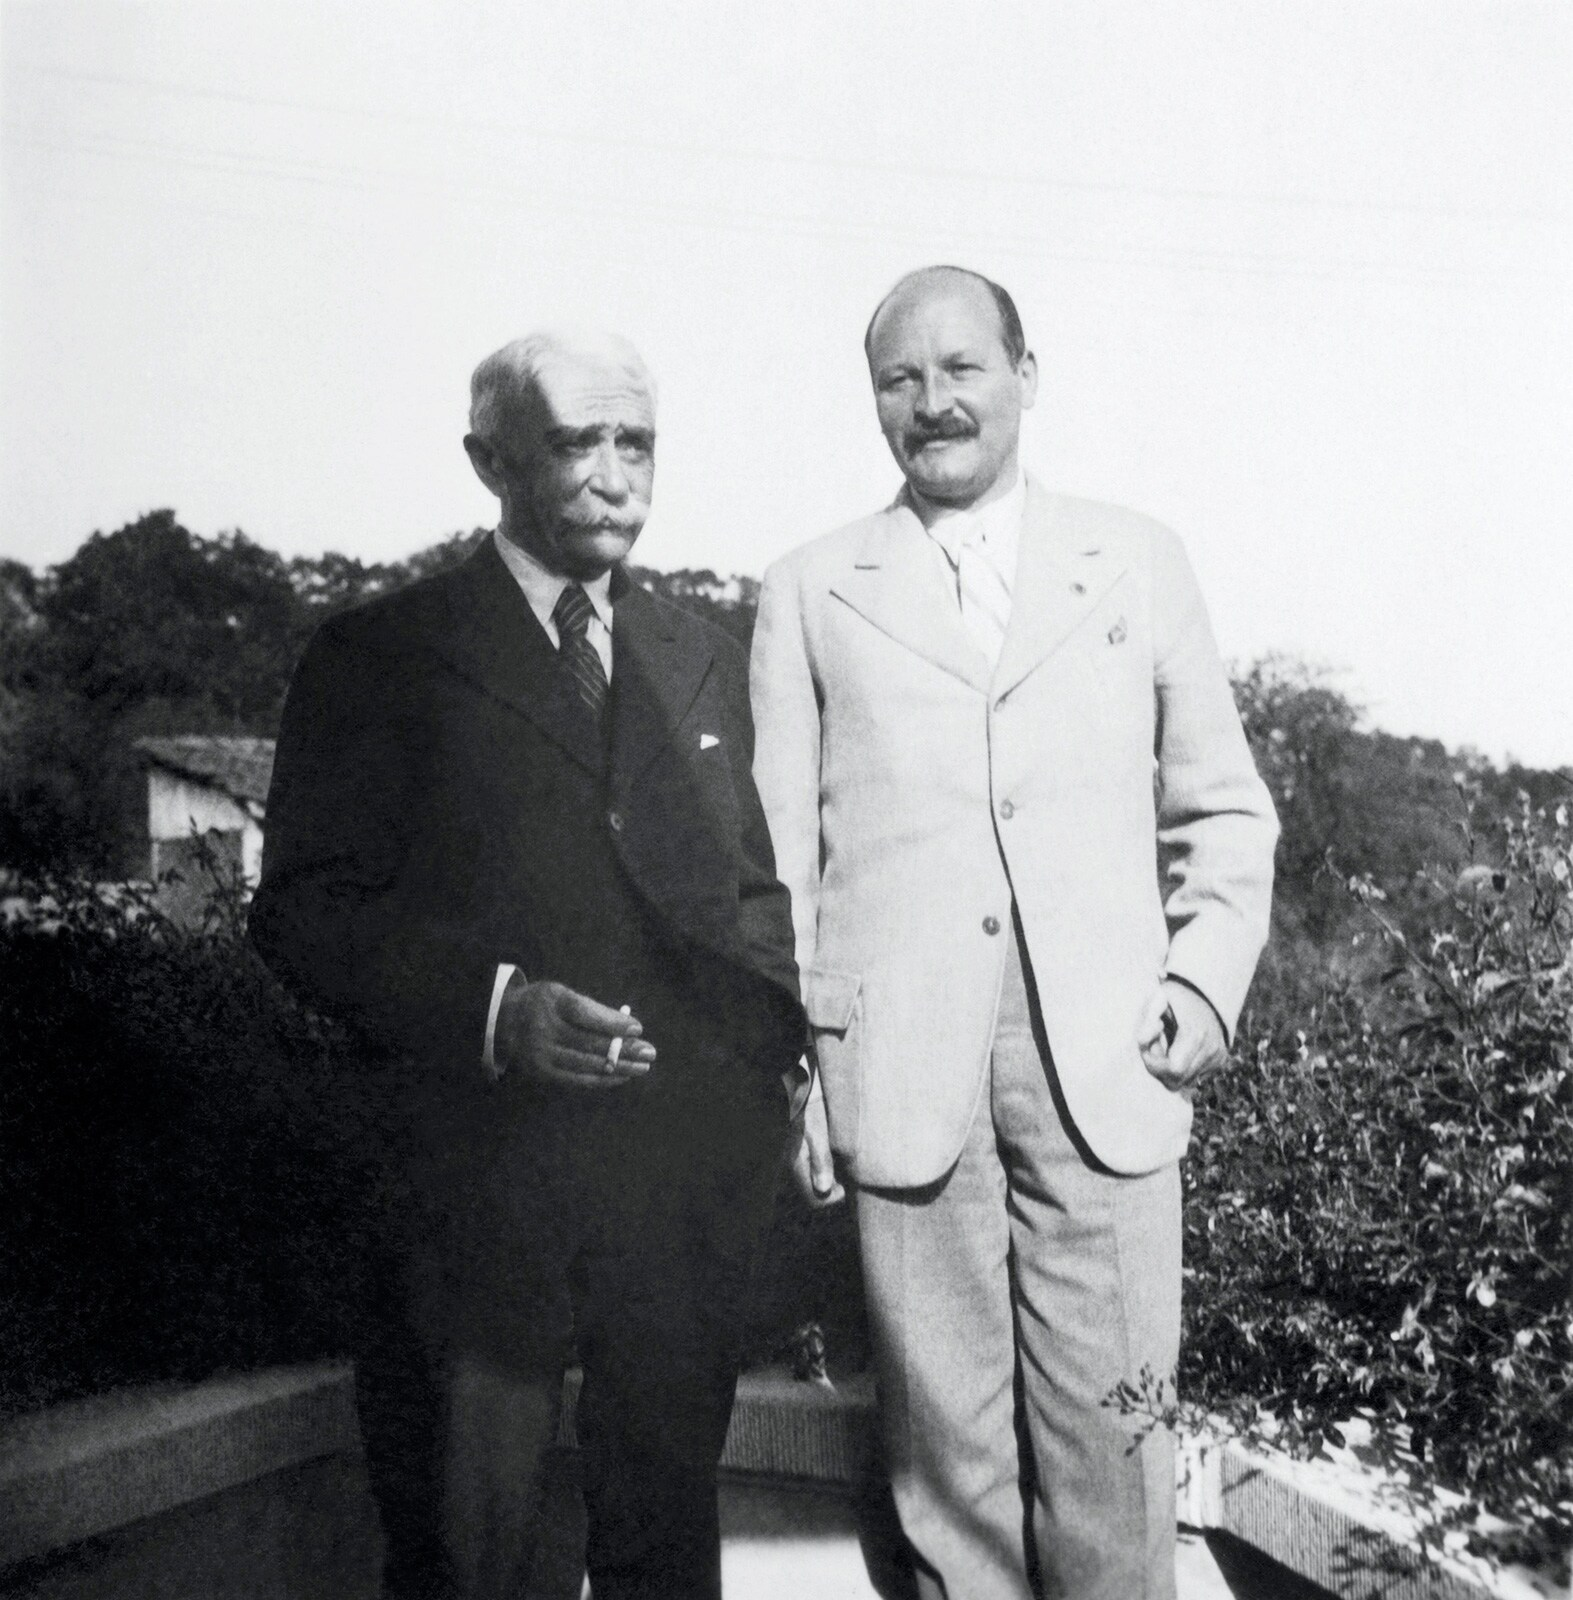 Baron Pierre de COUBERTIN and Thedor SCHMIDT, President of the National Olympic Committee of Austria (AUT).